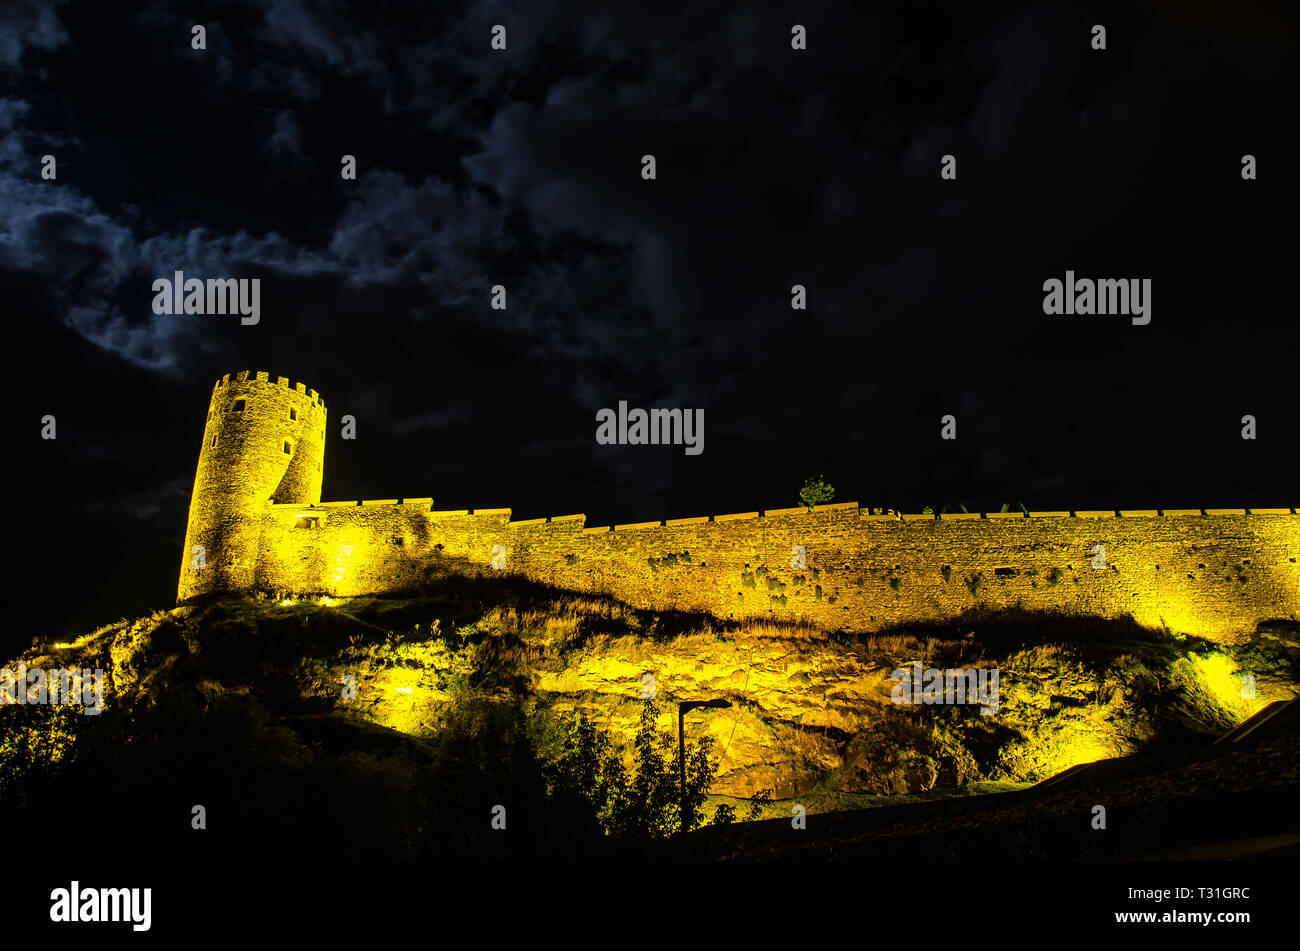 Night view of illuminated Rabati Fortress Castle in Akhaltsikhe town in Southern Georgia. - Stock Image